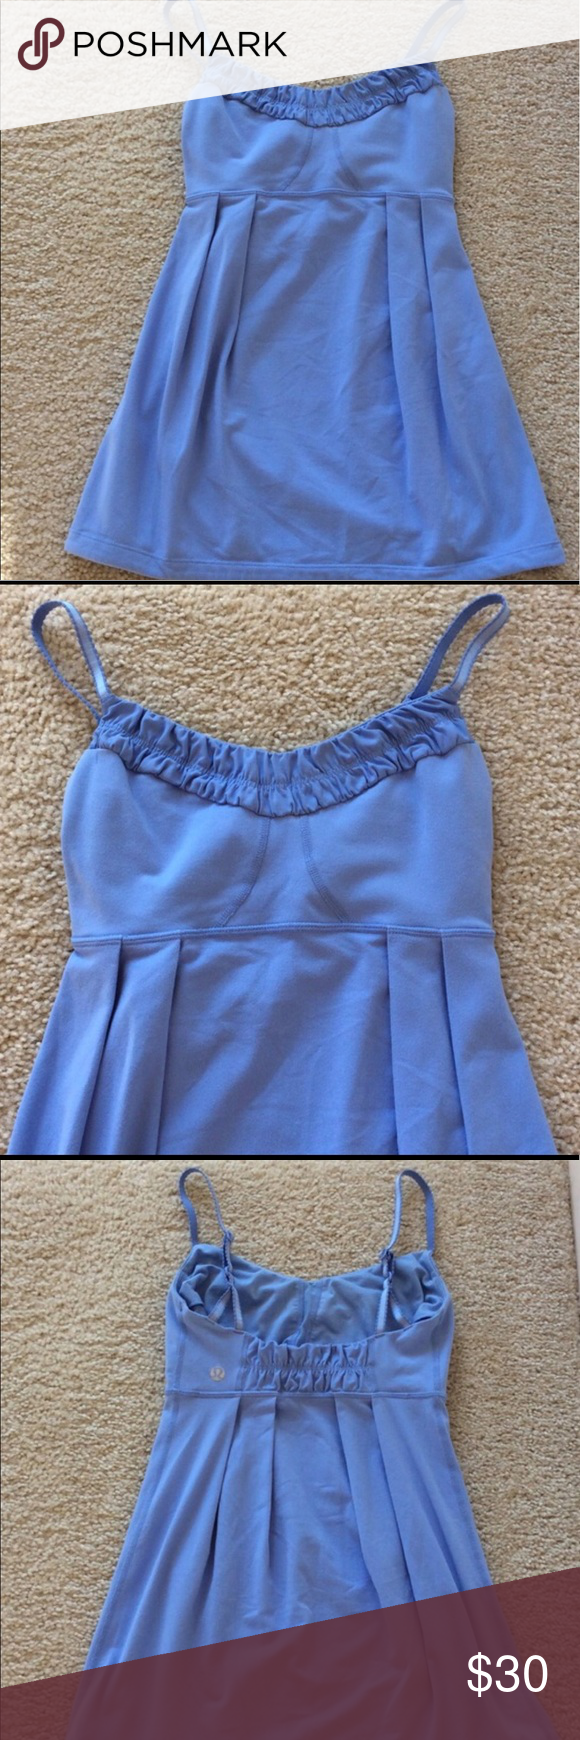 Authentic Lululemon Babydoll Top! Authentic Lululemon Babydoll Top! Worn handful of times, great condition. Detailing around the neck and adjustable straps. Size 4. lululemon athletica Tops Camisoles